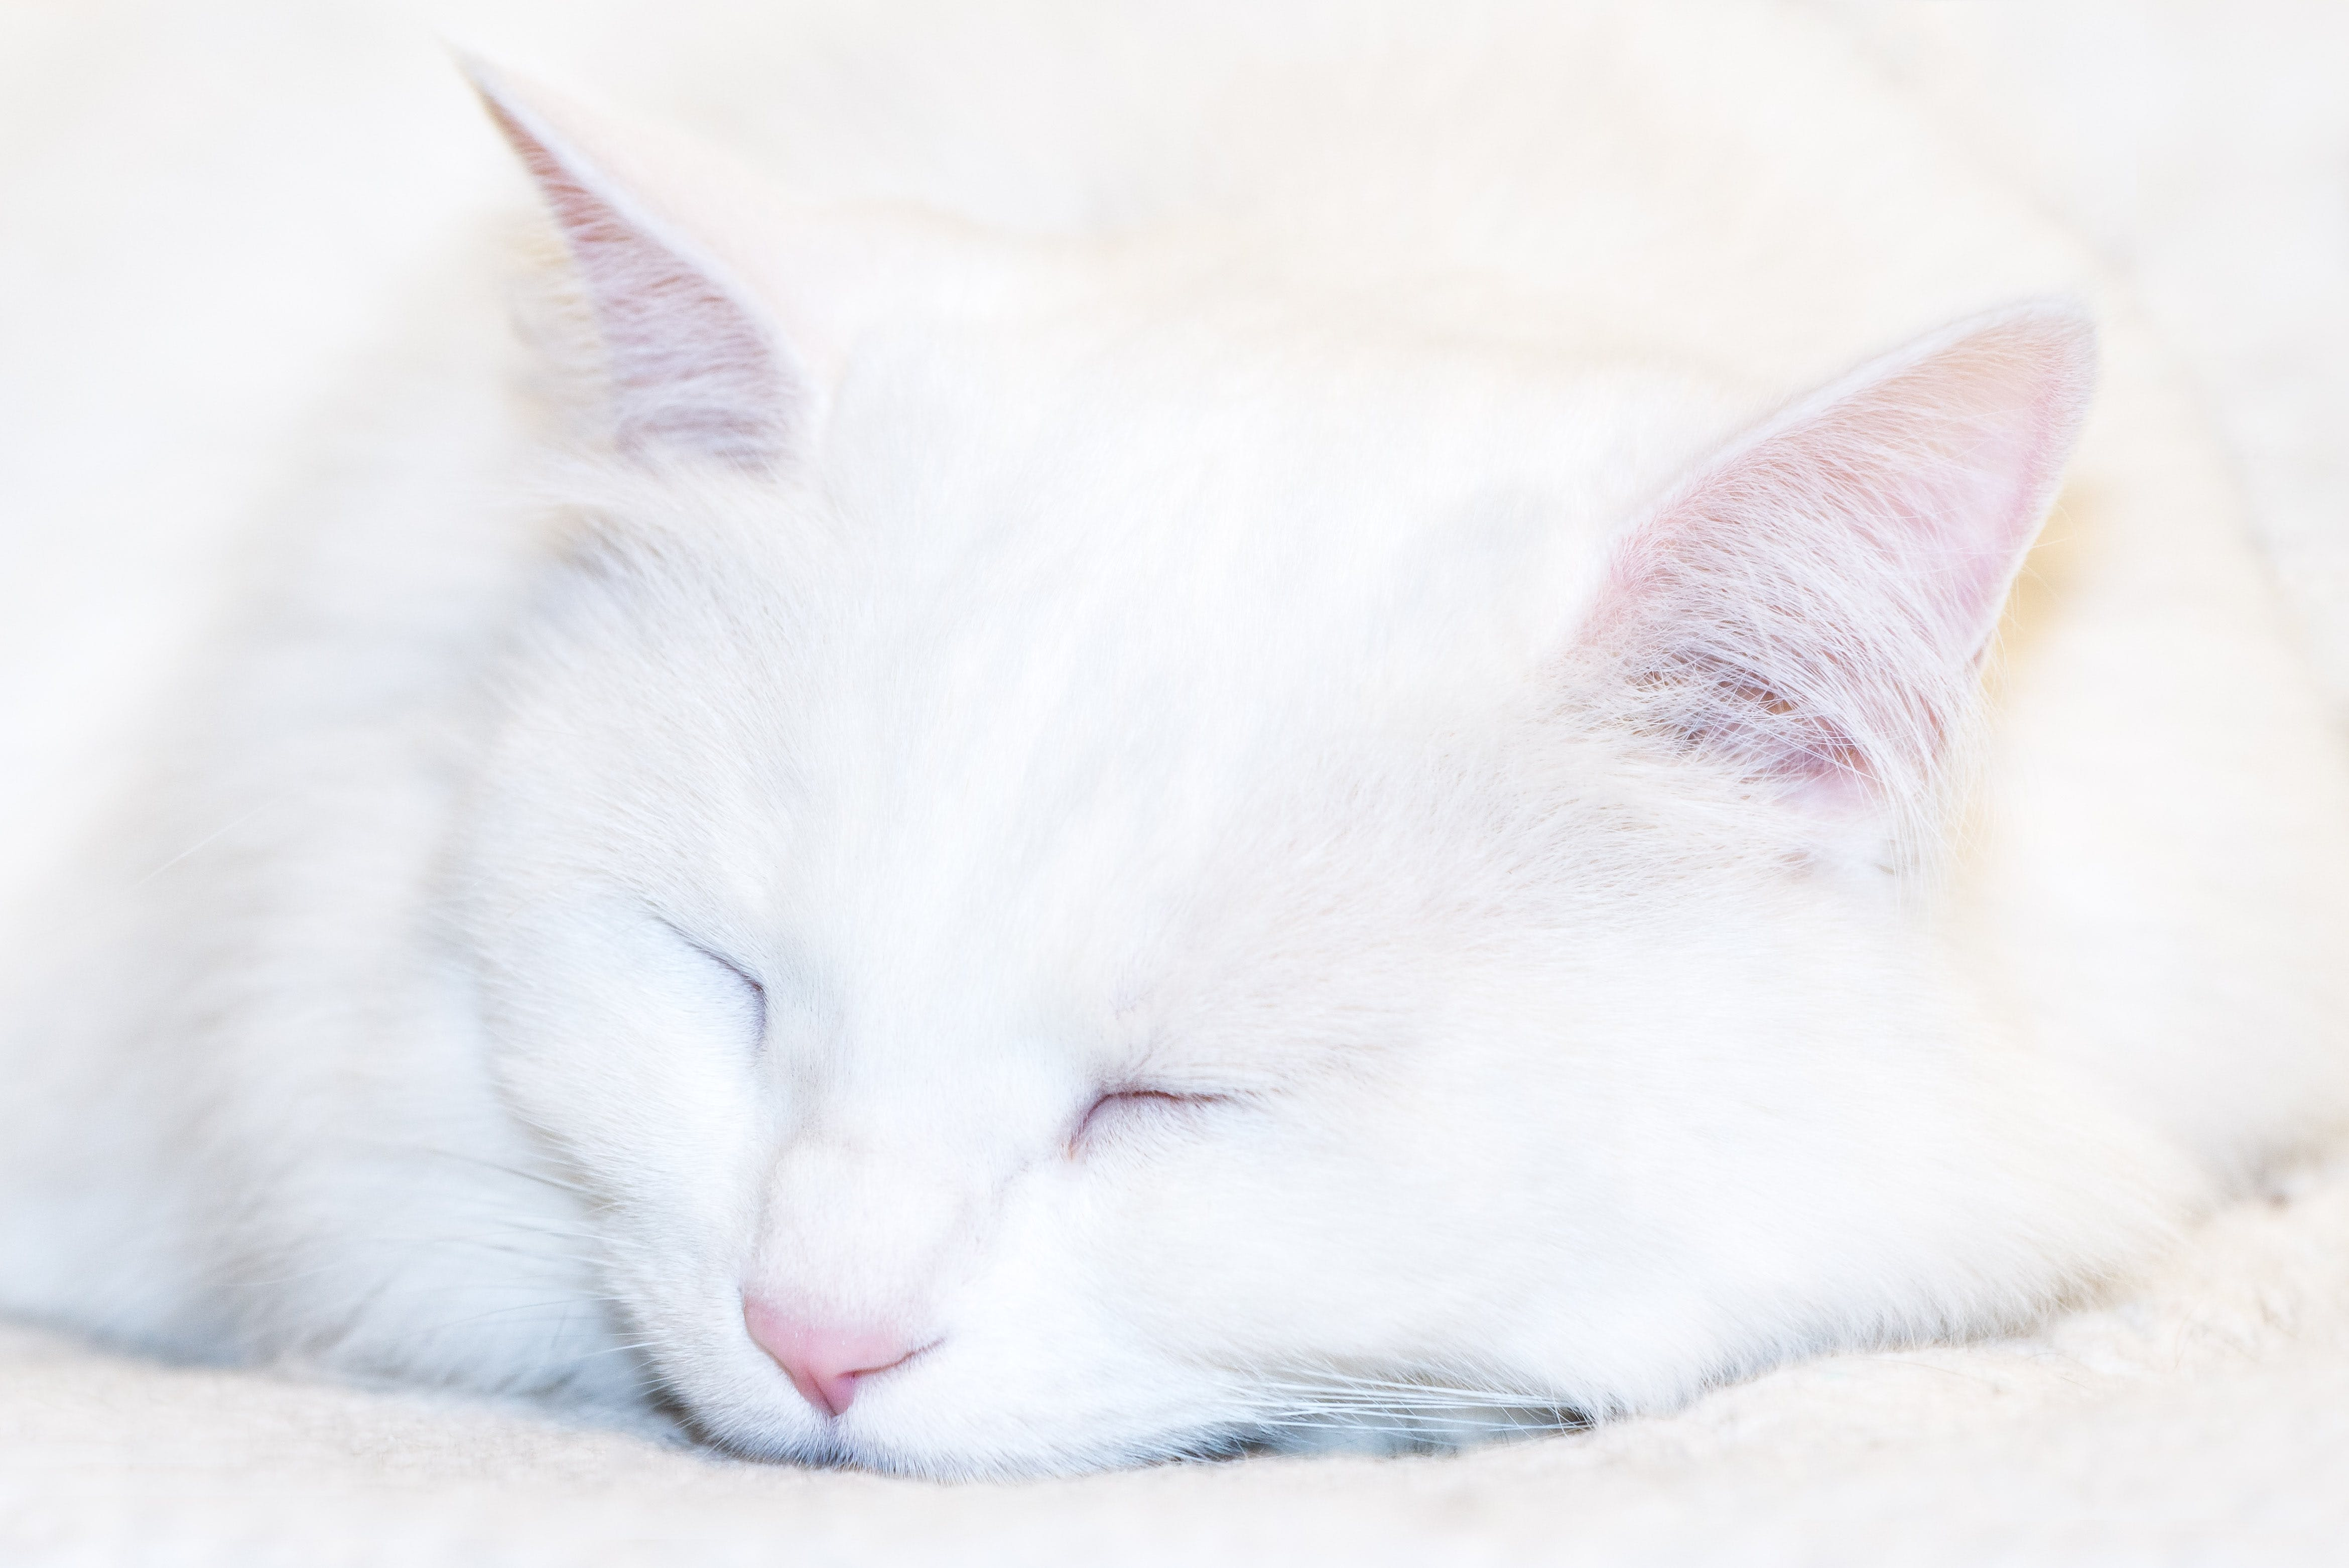 Photo Of White Cat Sleeping